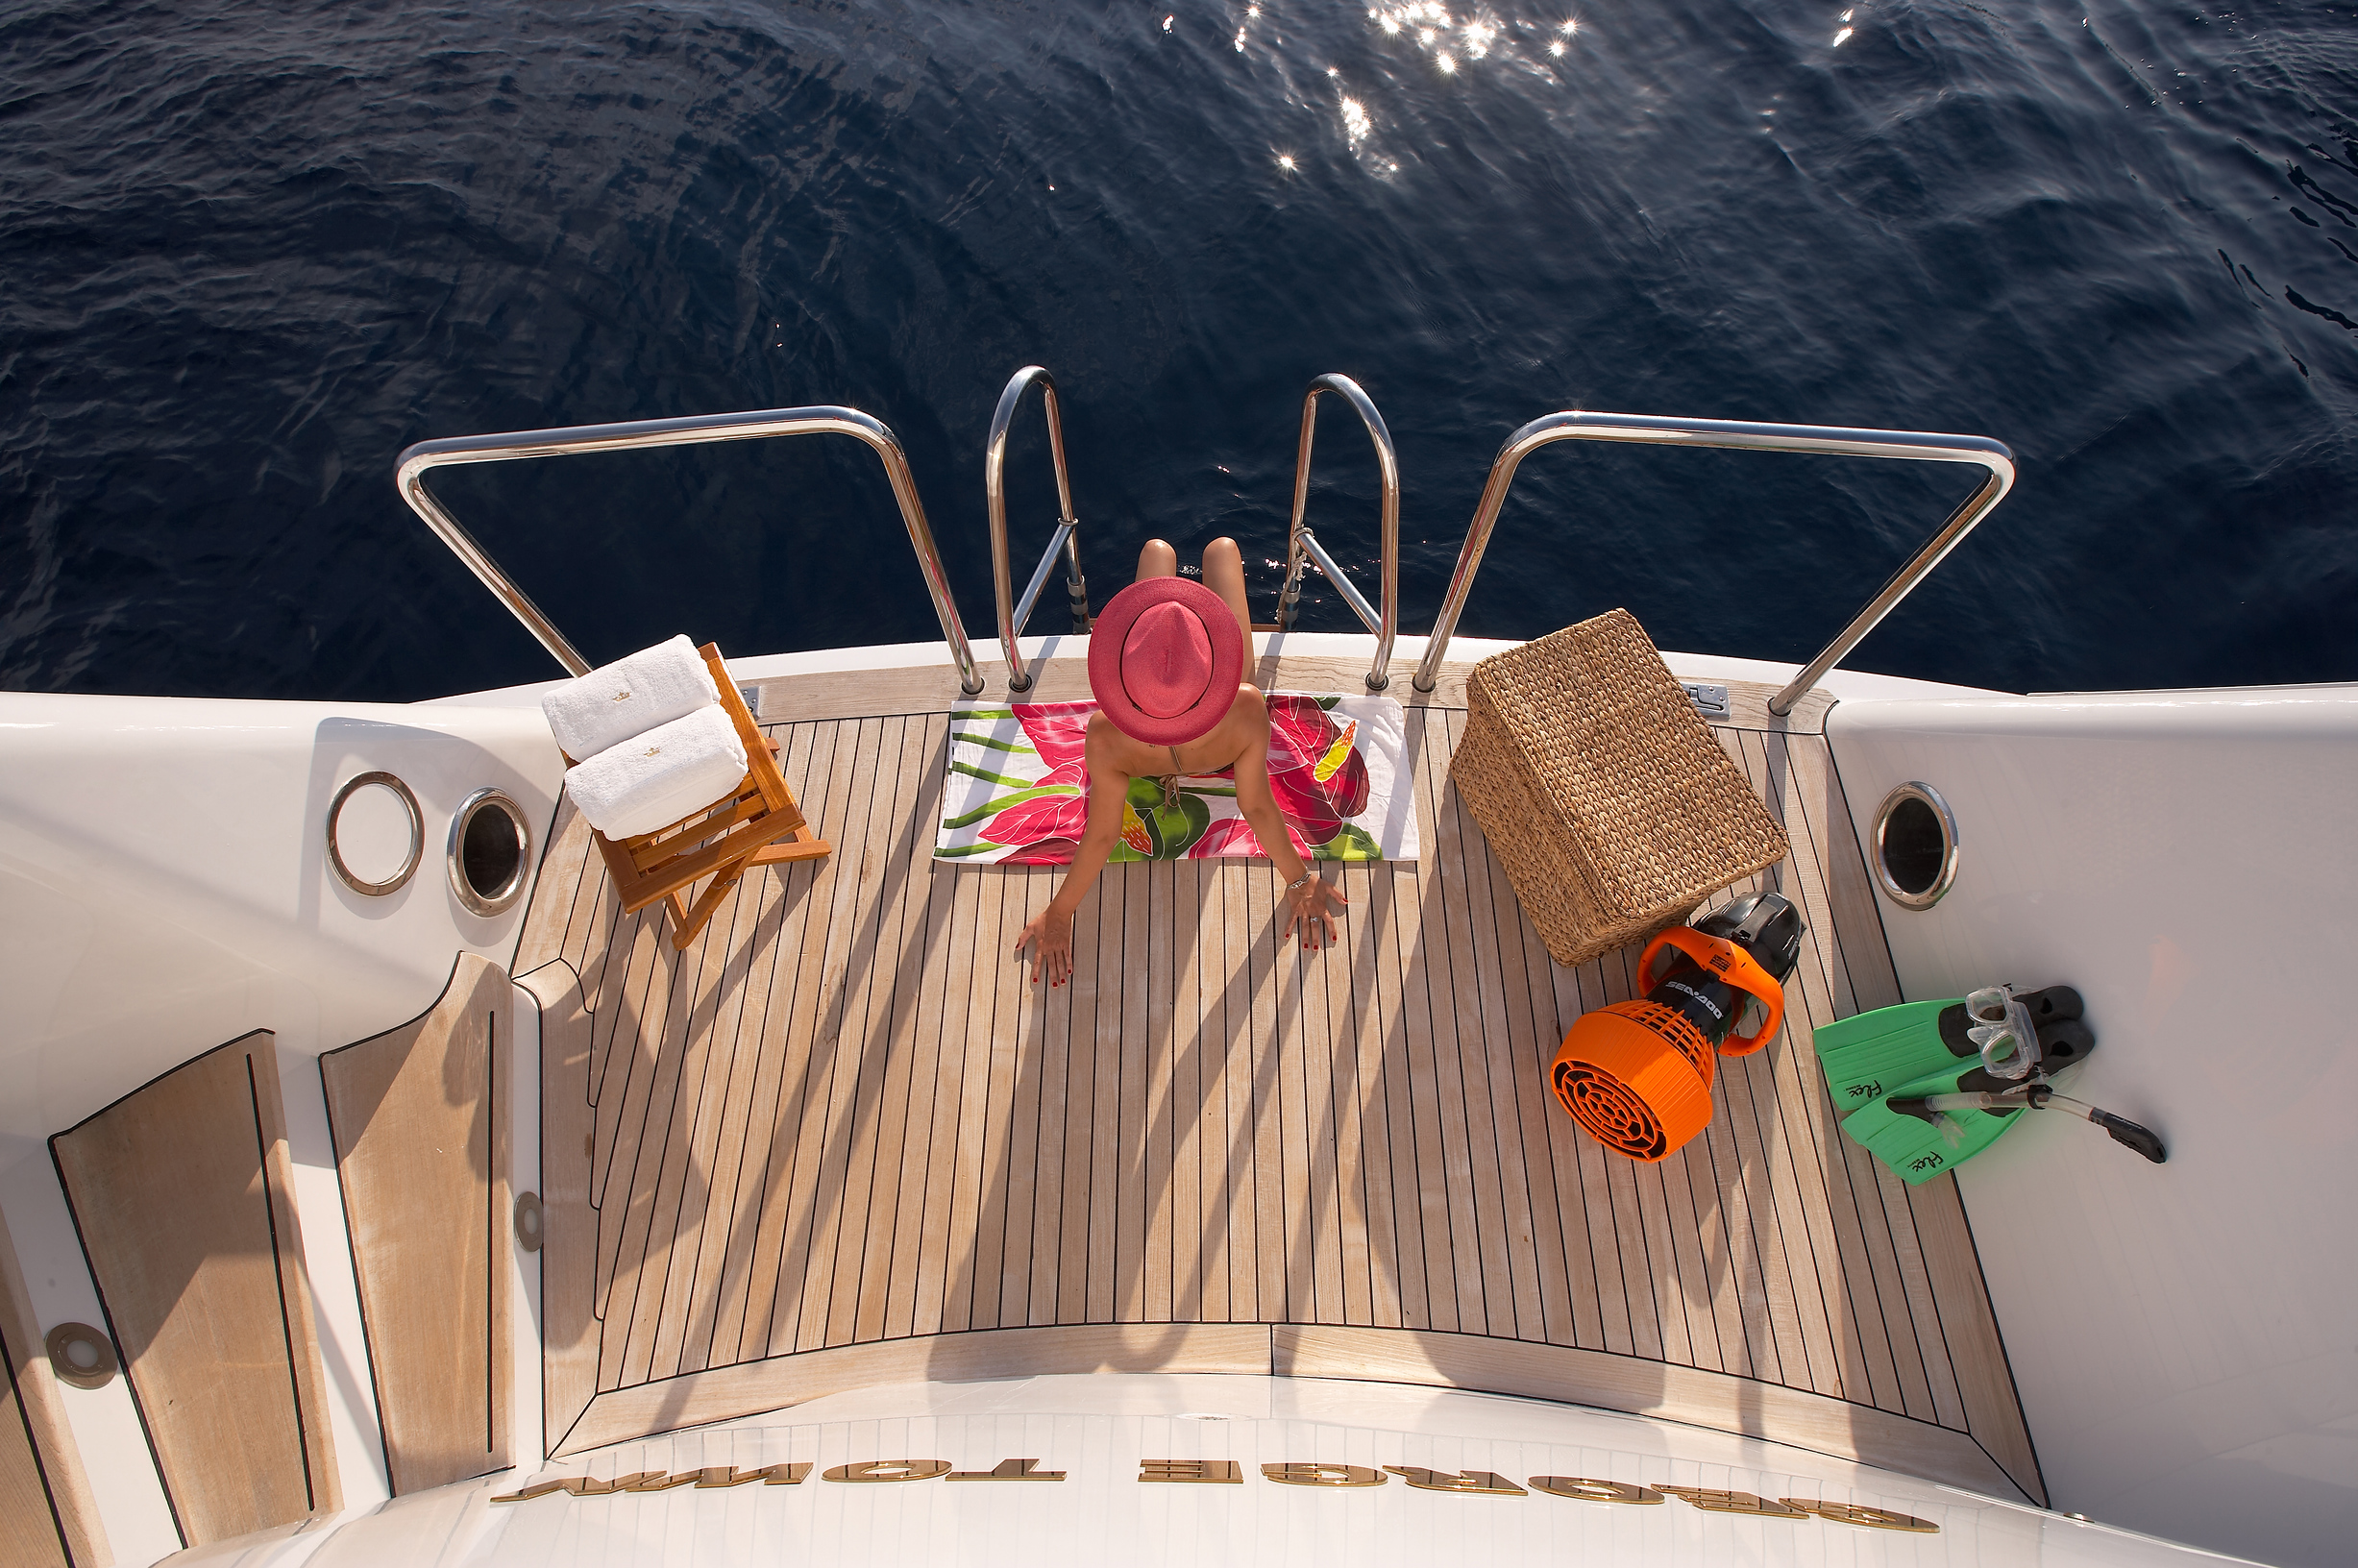 Yacht Charter Lifestyle